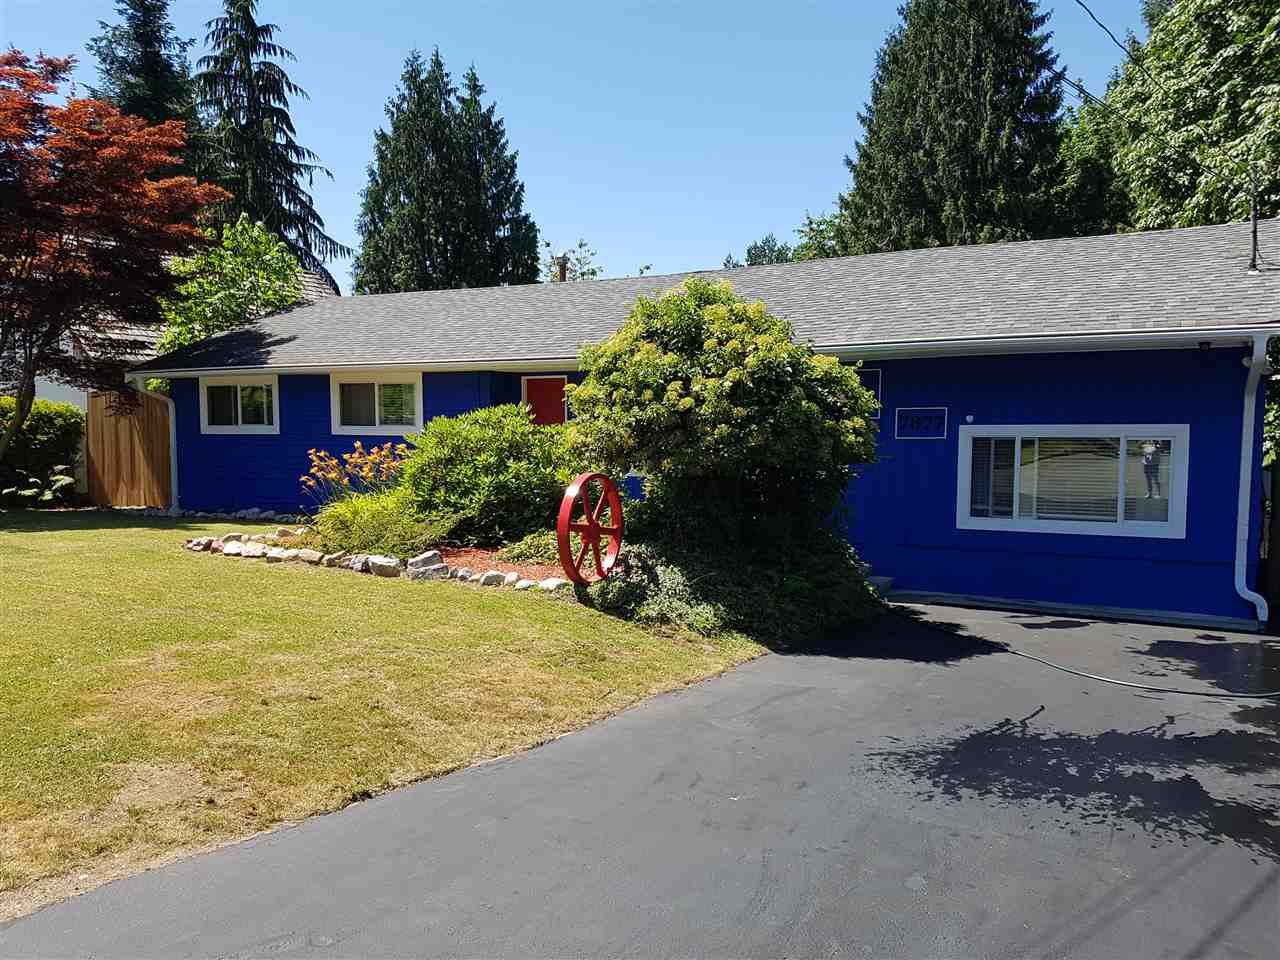 Main Photo: 7877 WREN Street in Mission: Mission BC House for sale : MLS® # R2185666